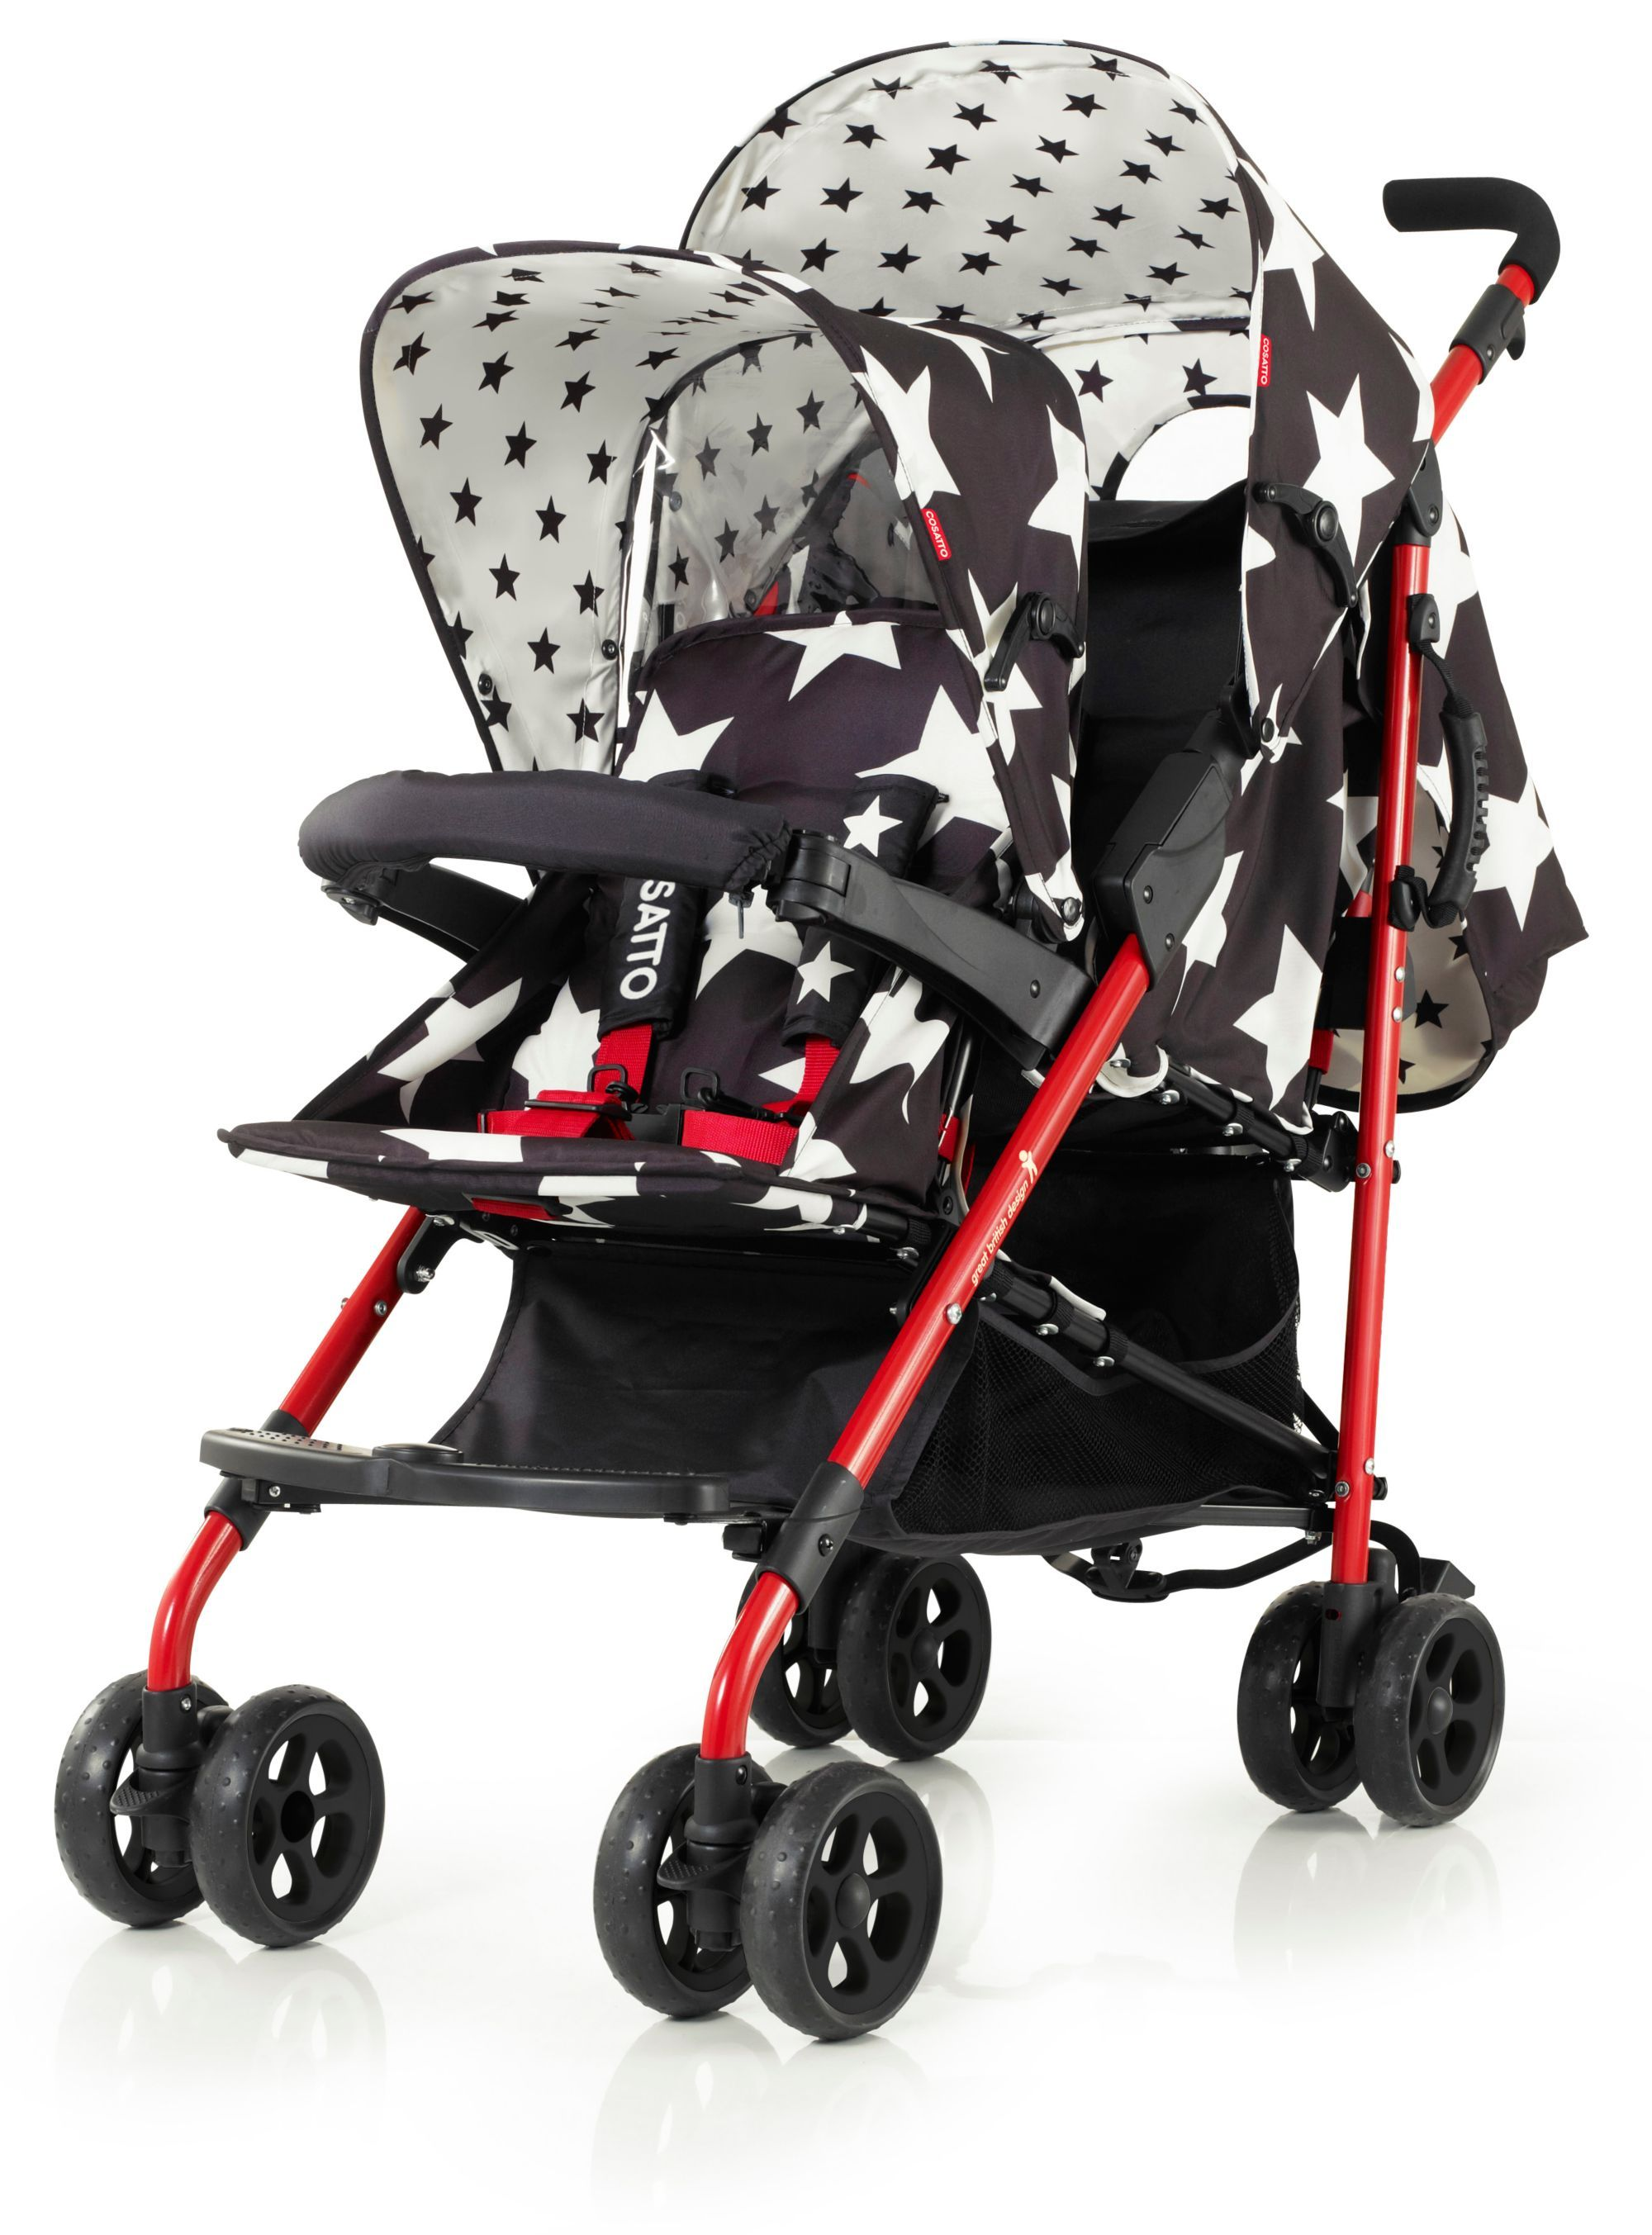 Maclaren Stroller Uk Reviews Double Strollers Buying Suggestions To Find The Best Twin